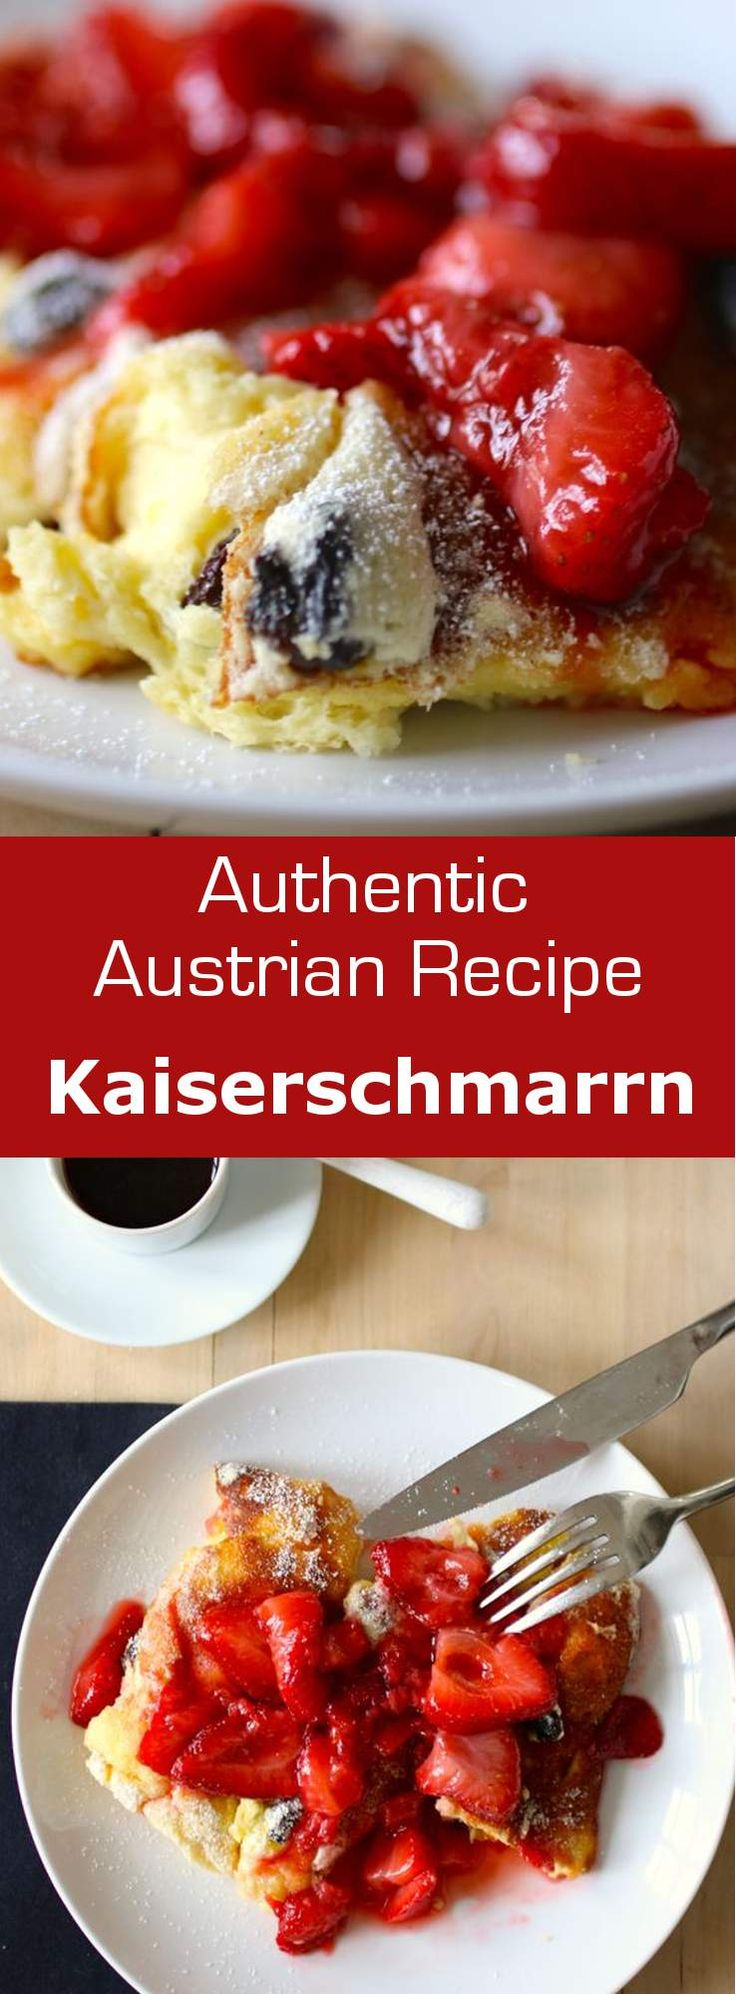 Kaiserschmarrn is a very light and airy Austrian pancake prepared with a sweet dough made with eggs, flour and sugar and cooked in butter. #breakfast #brunch #austria